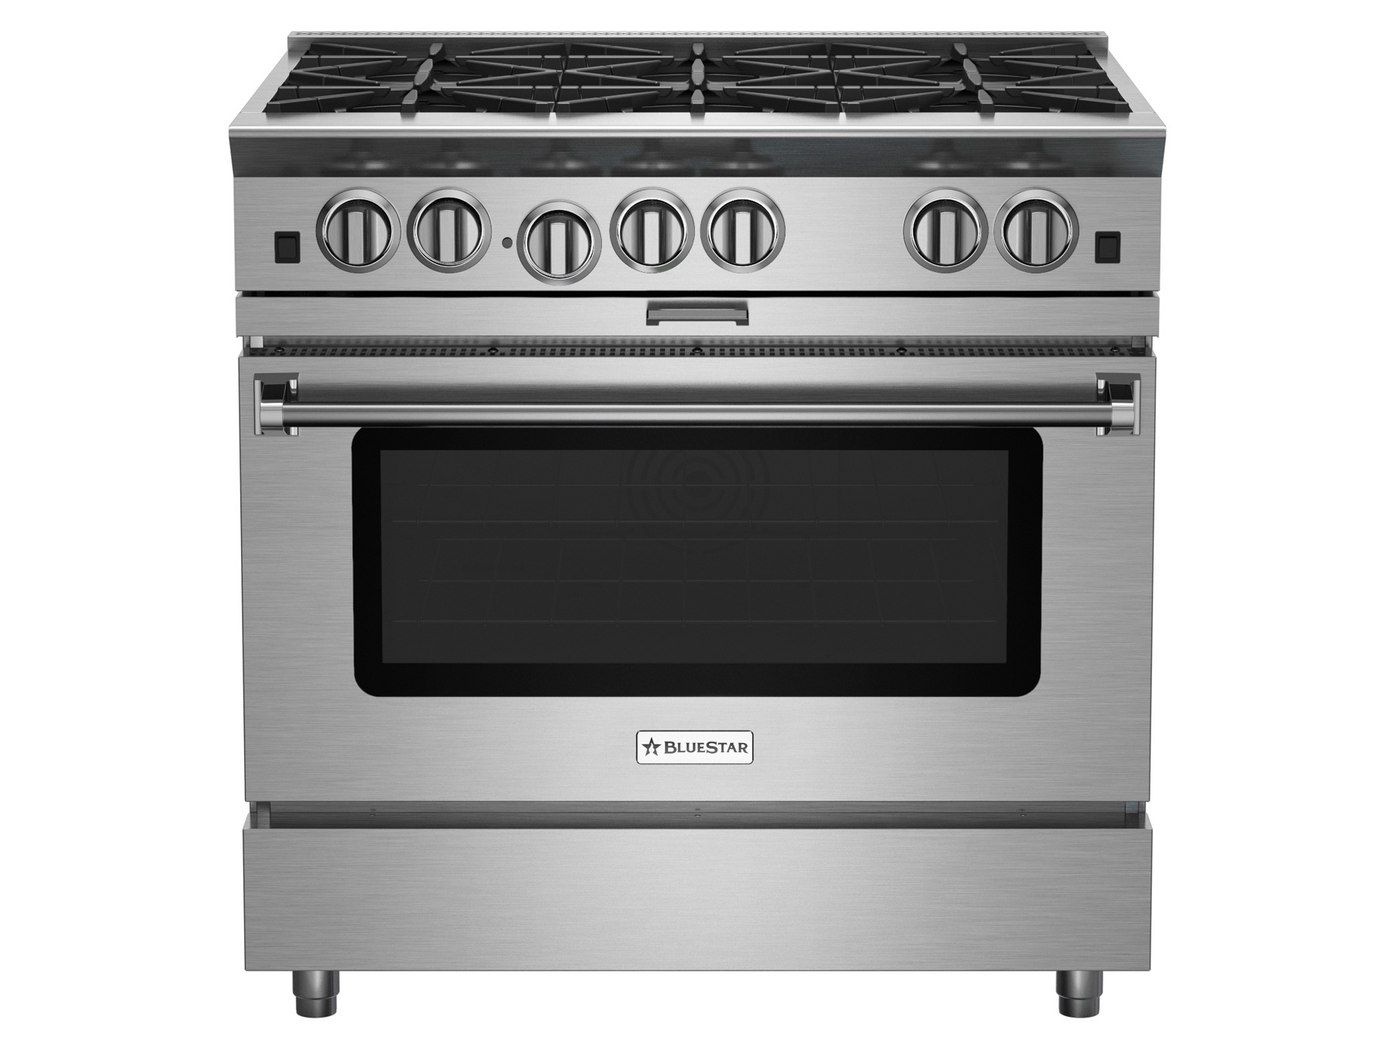 36-inch Platinum Series Freestanding Range from BlueStar